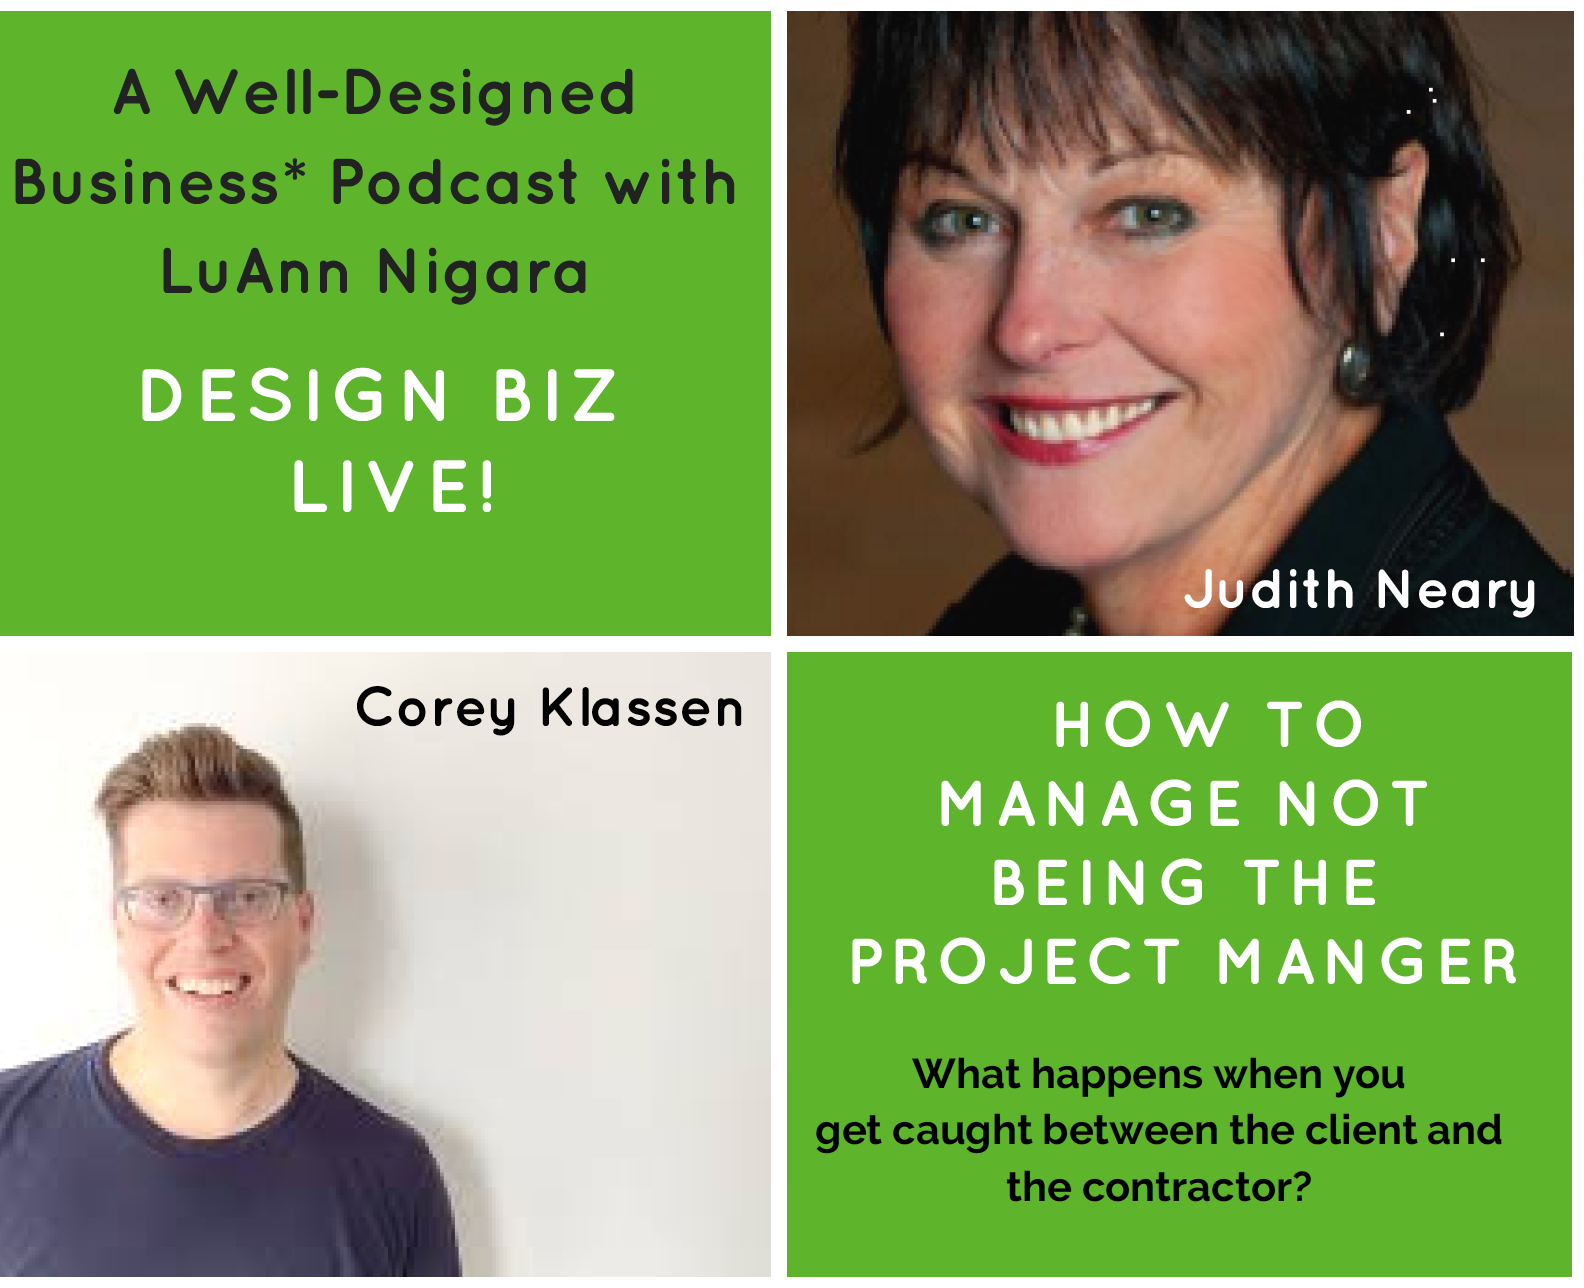 264-design-biz-live-how-to-manage-not-being-the-project-manager_thumbnail.png